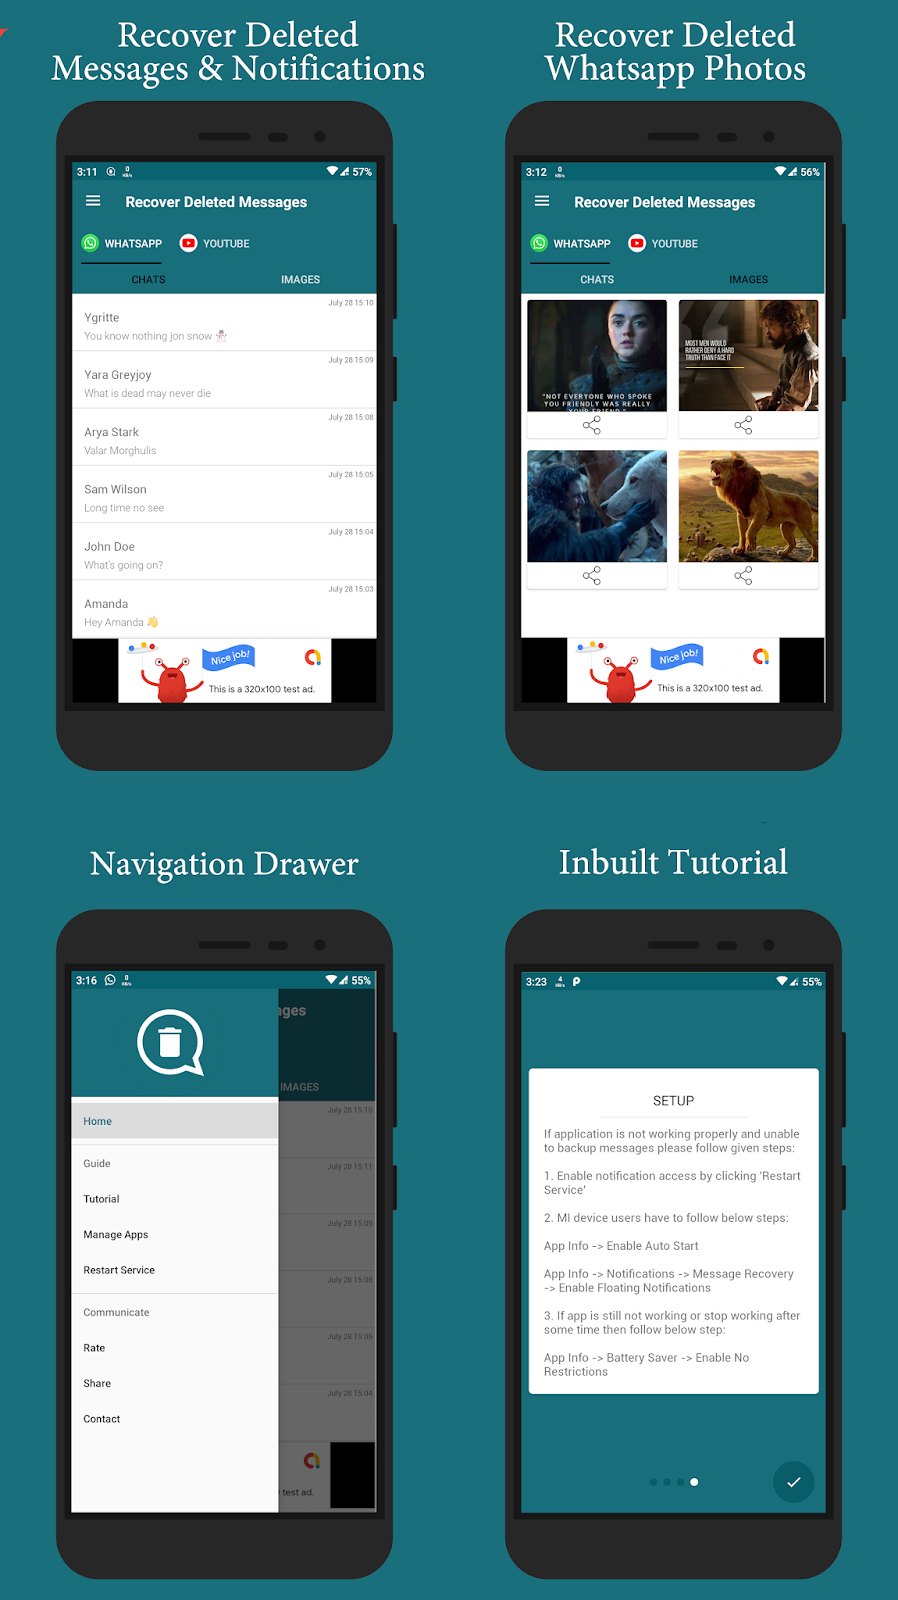 Recover Deleted Messages Android App with Admob Integration - 1